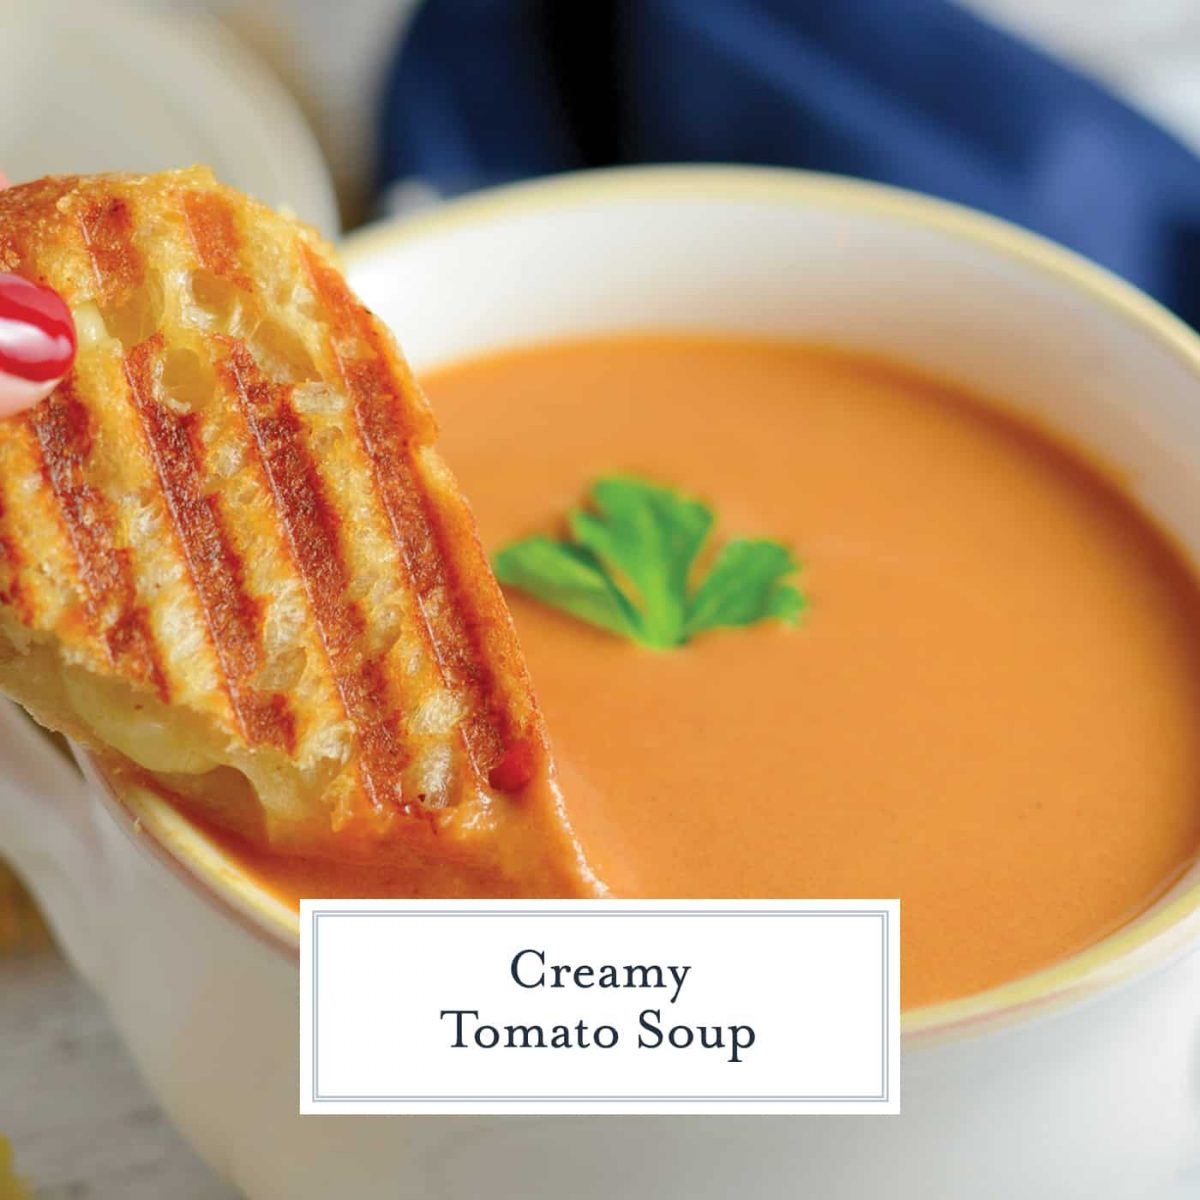 Creamy Homemade Tomato Soup is rich and creamy, full of flavor from roasted onions, tomatoes and garlic! Make-ahead and freezer friendly! #tomatosouprecipe #homemadetomatosoup www.savoryexperiments.com